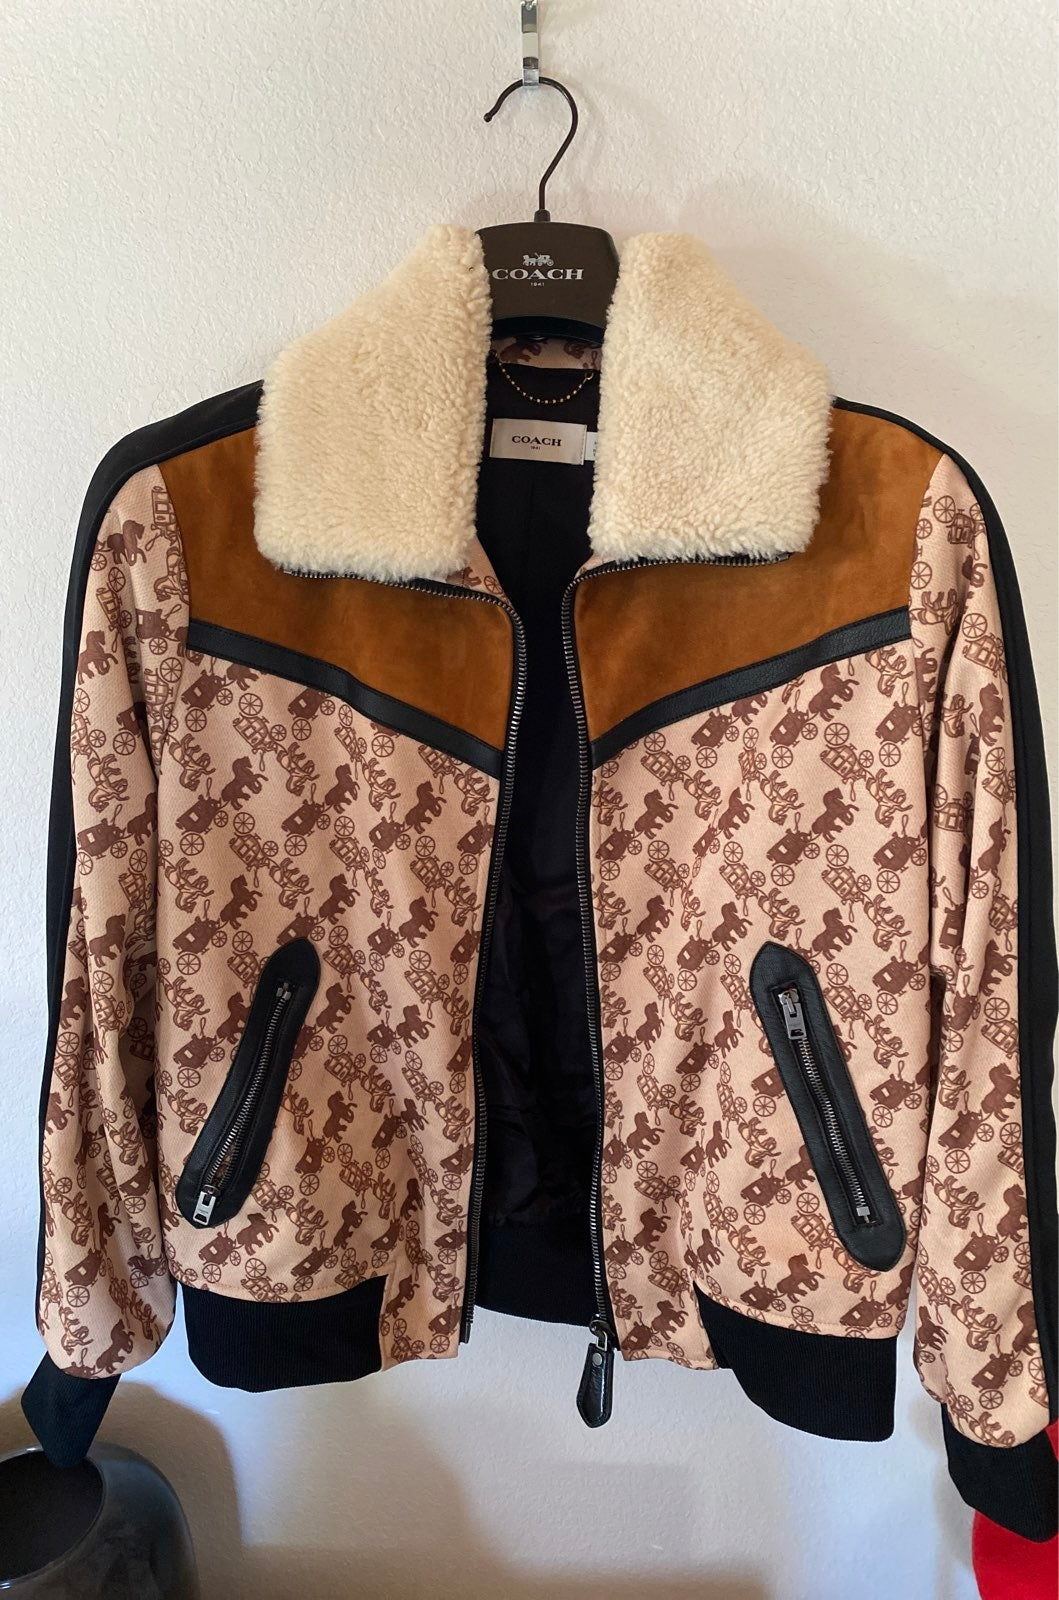 COACH 1941 Horse and Carriage Jacket